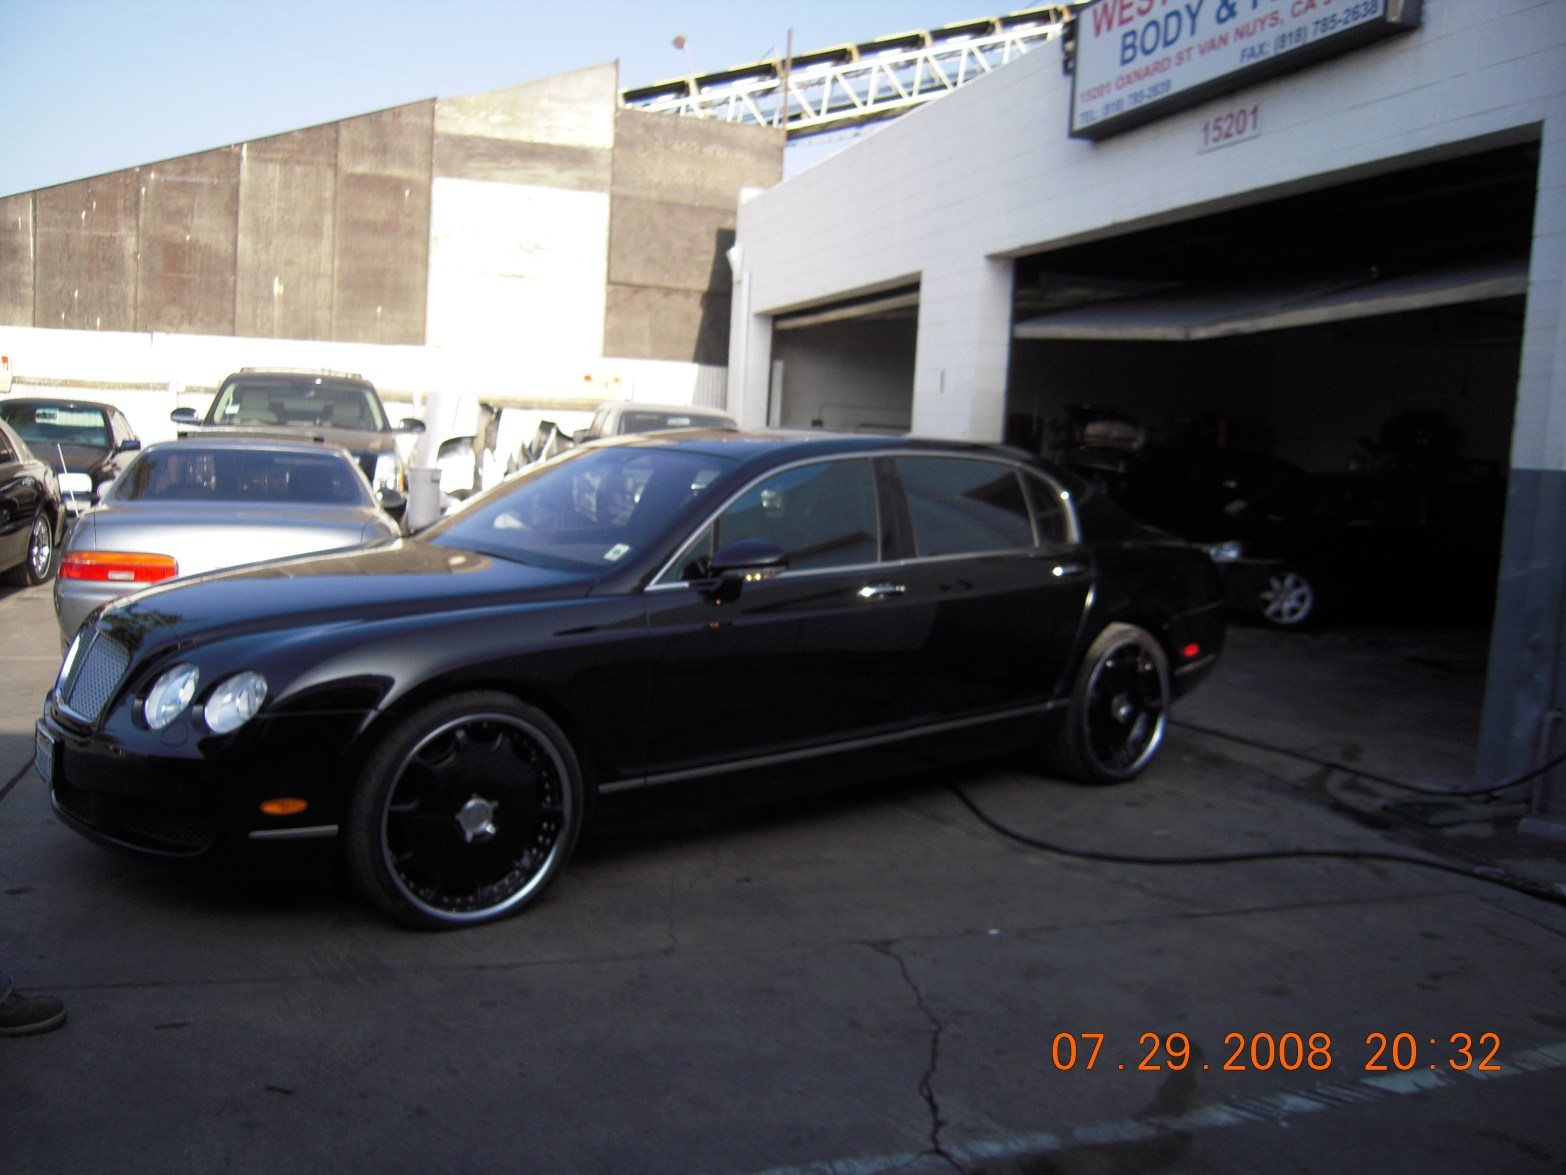 west-coast-body-and-paint-black-bentley-3